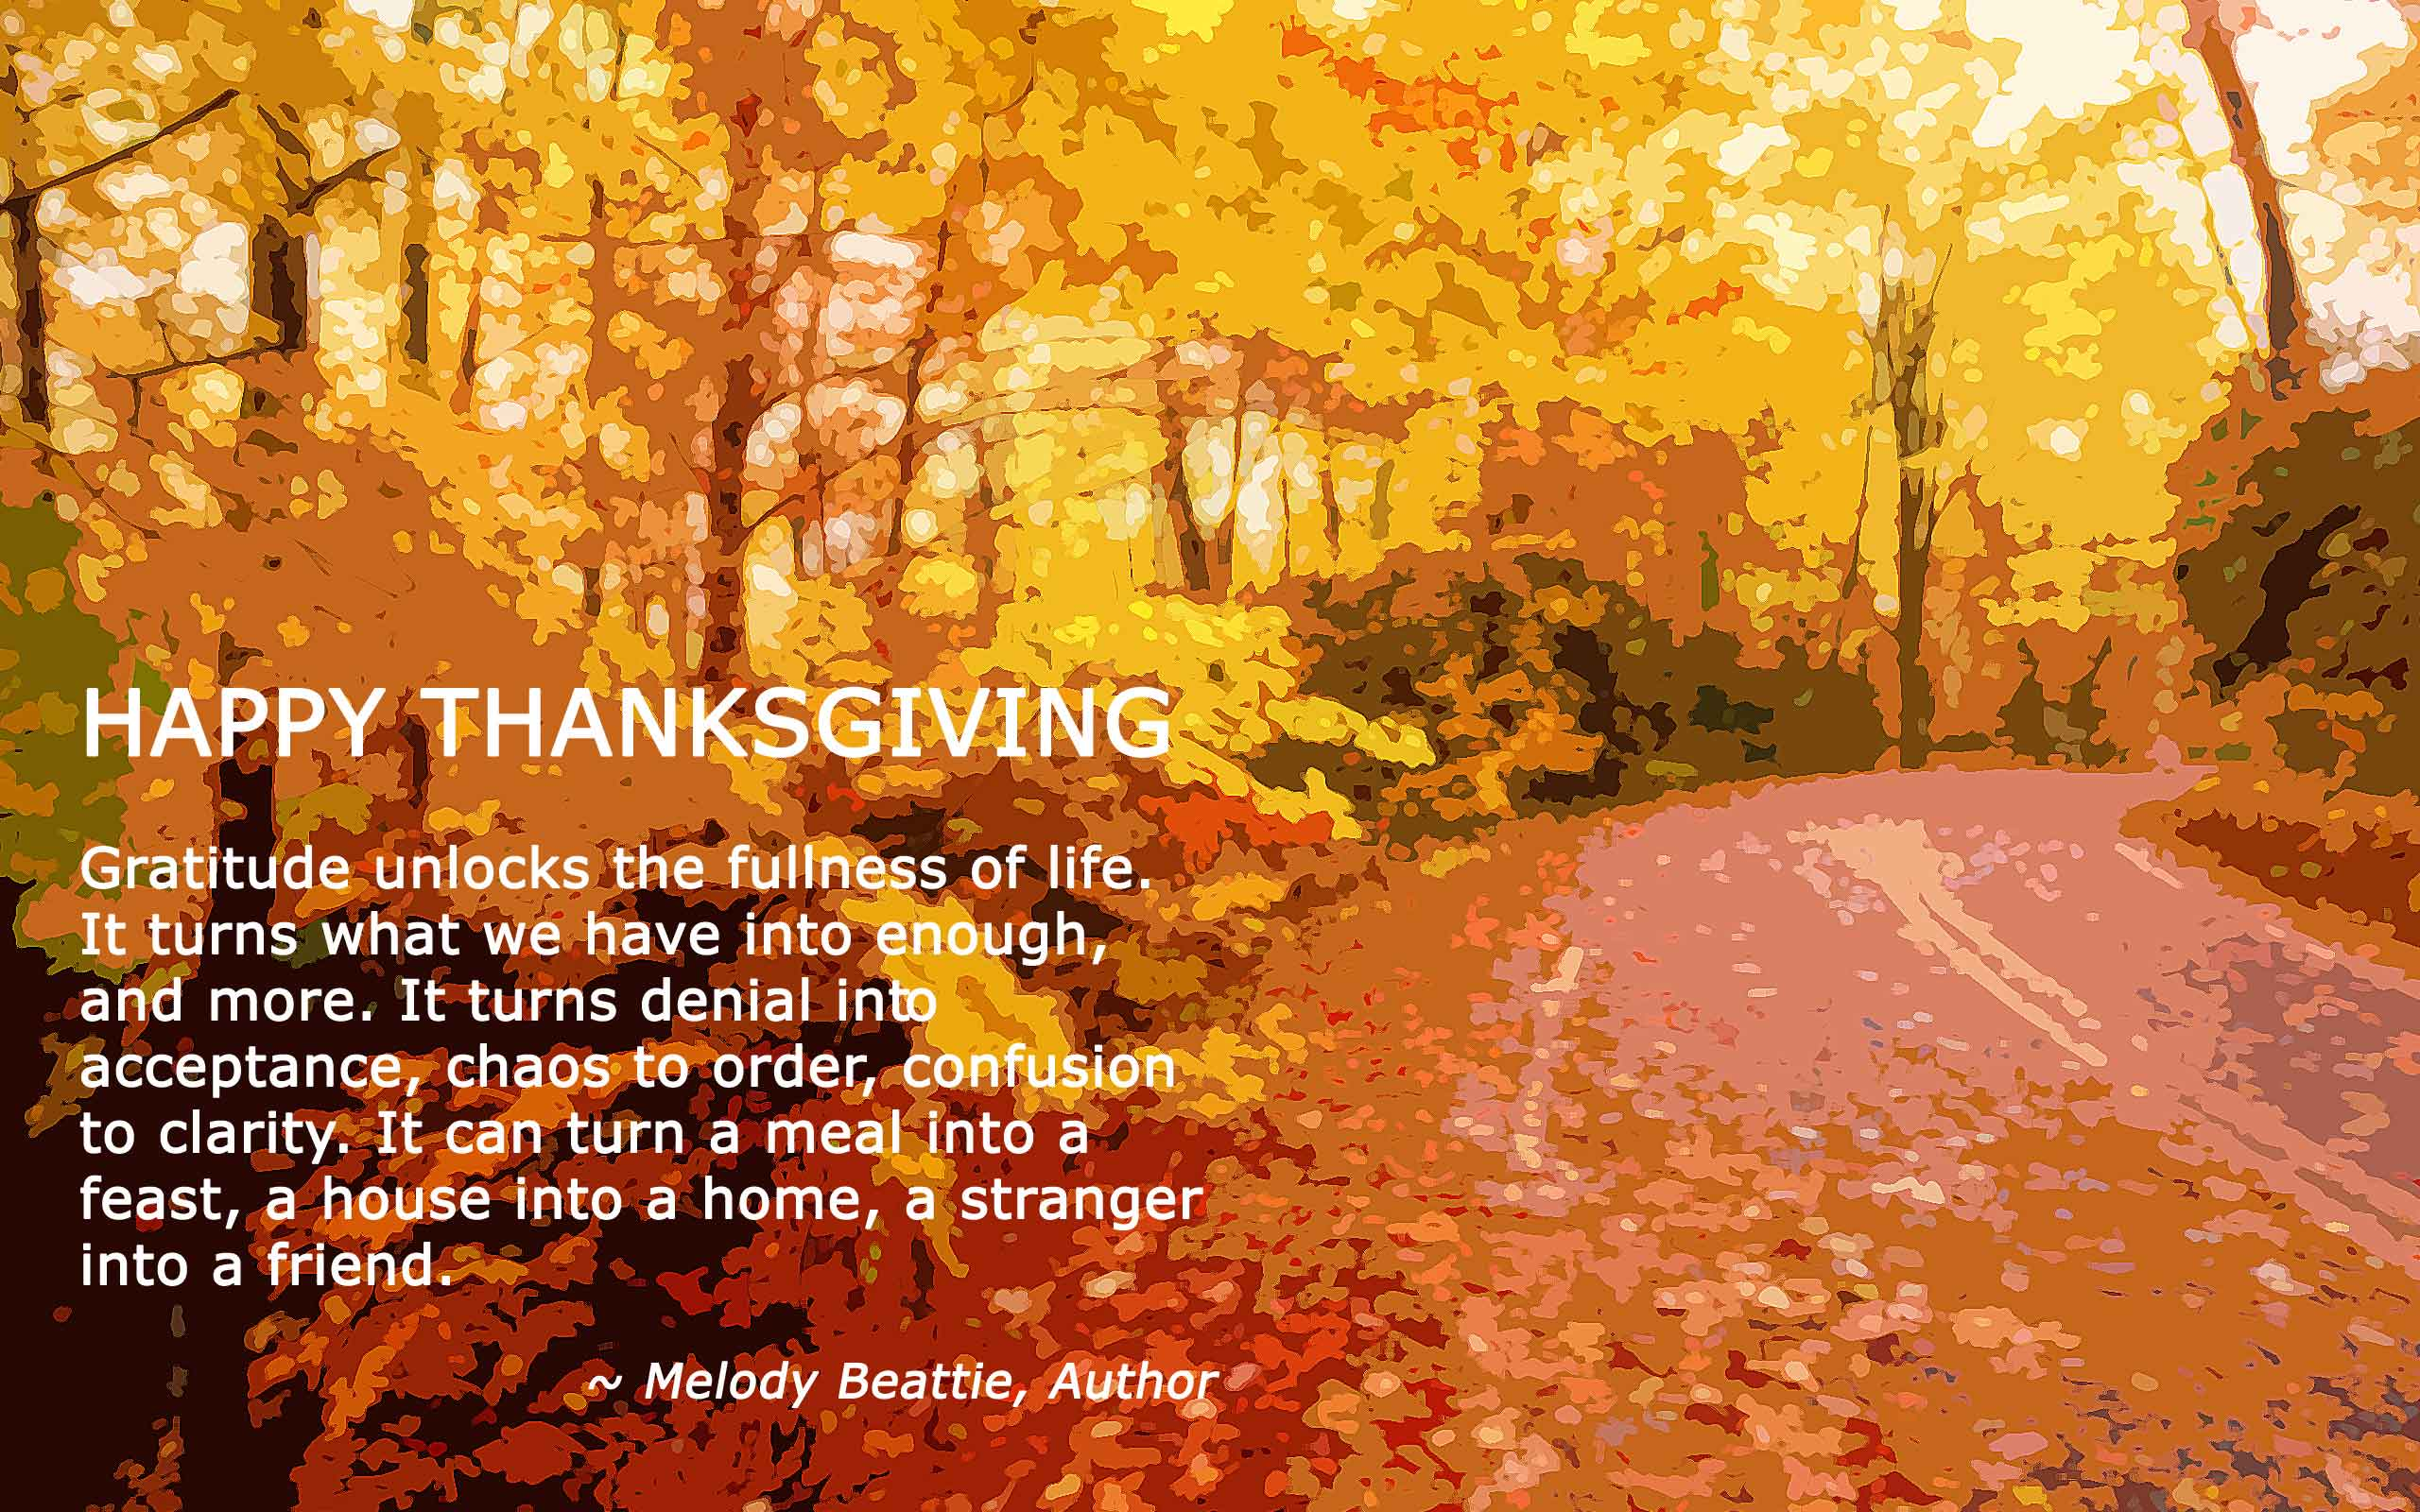 Happy Thanksgiving! Be thankful, be joyful, and remember ...